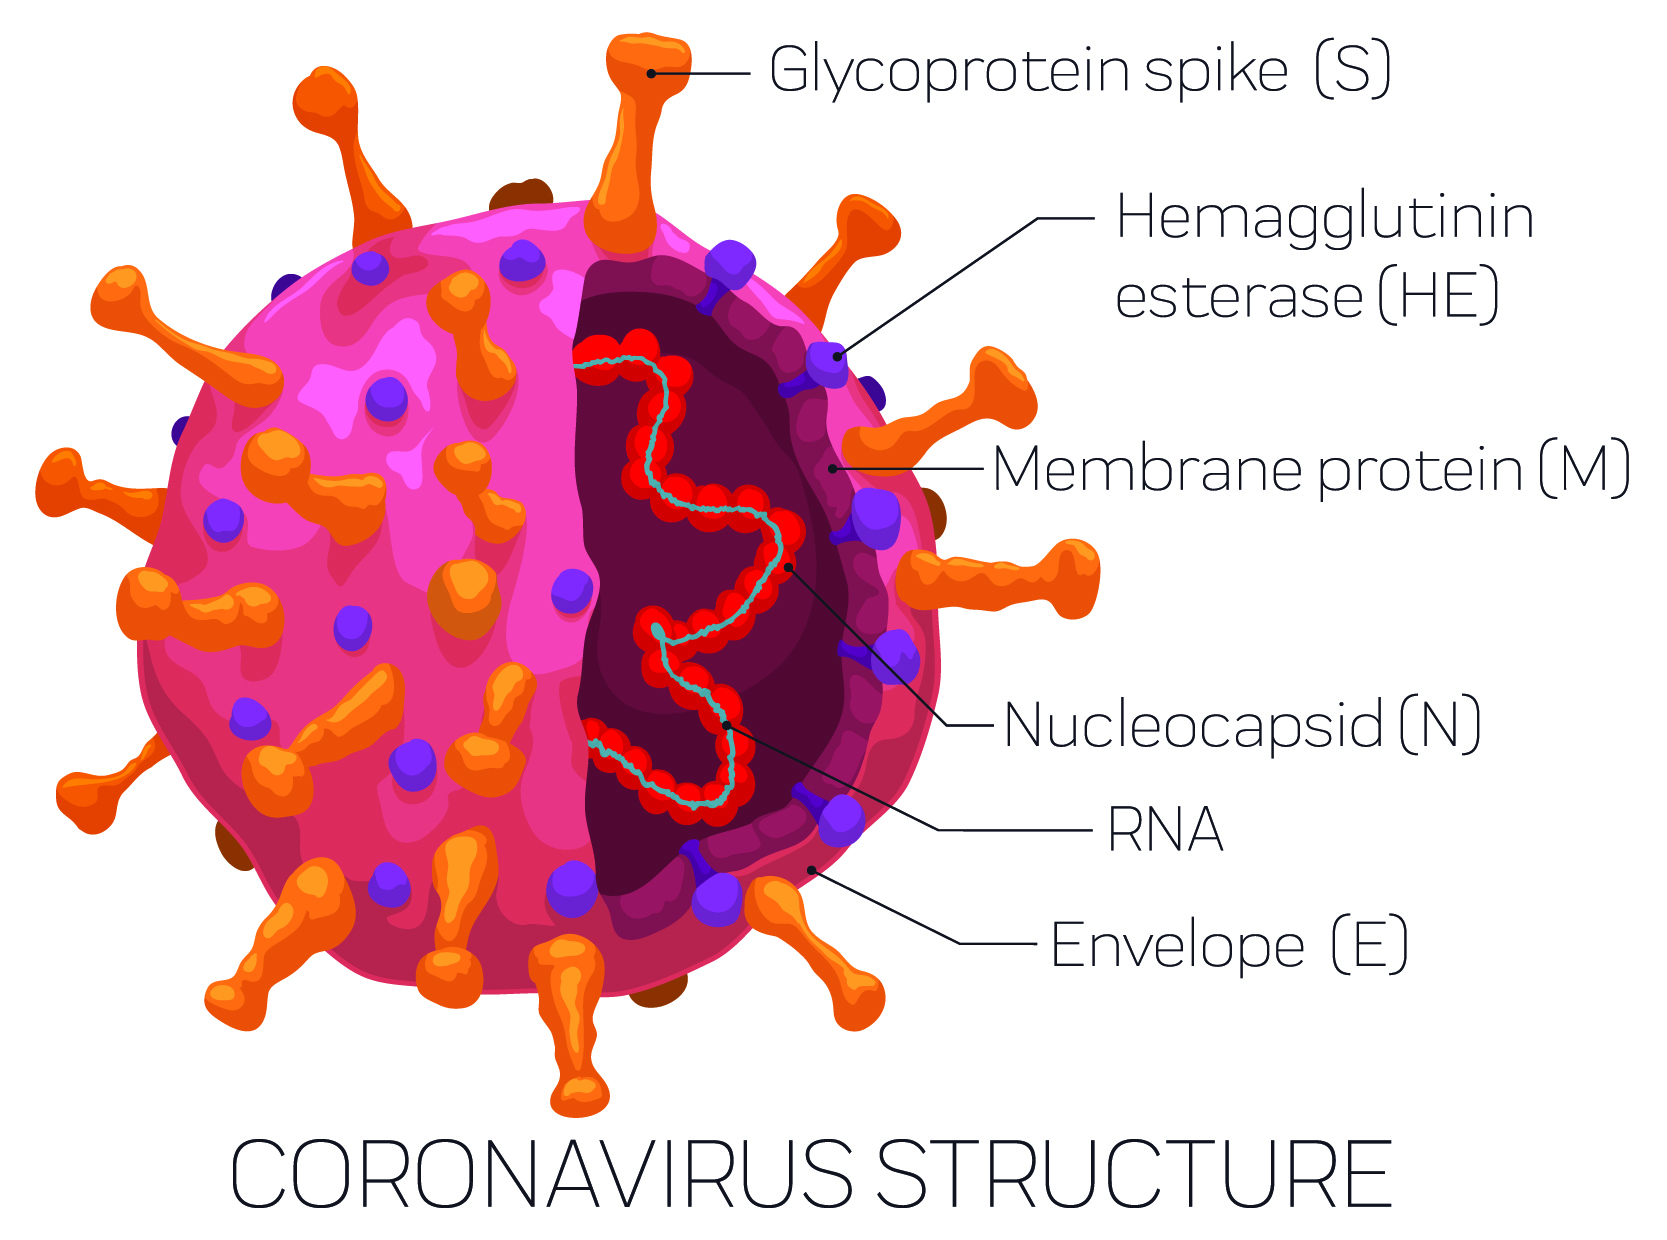 The structure of SARS-COV-2 with its spike protein (S). (PenWin/iStock/Getty Images Plus)